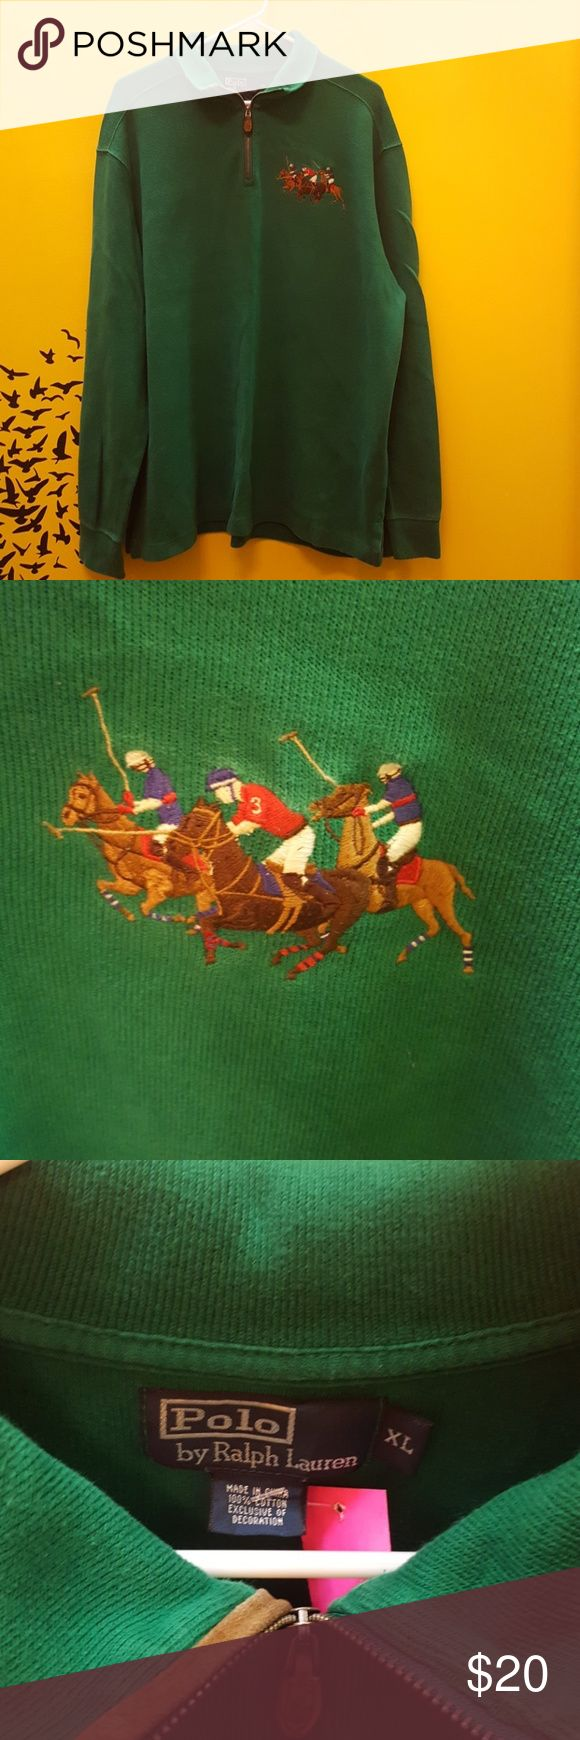 polo Ralph Lauren sweatshirt This is a green sweatshirt Me by Ralph Lauren polo, polo horses on it with zipper in the front Polo by Ralph Lauren Sweaters